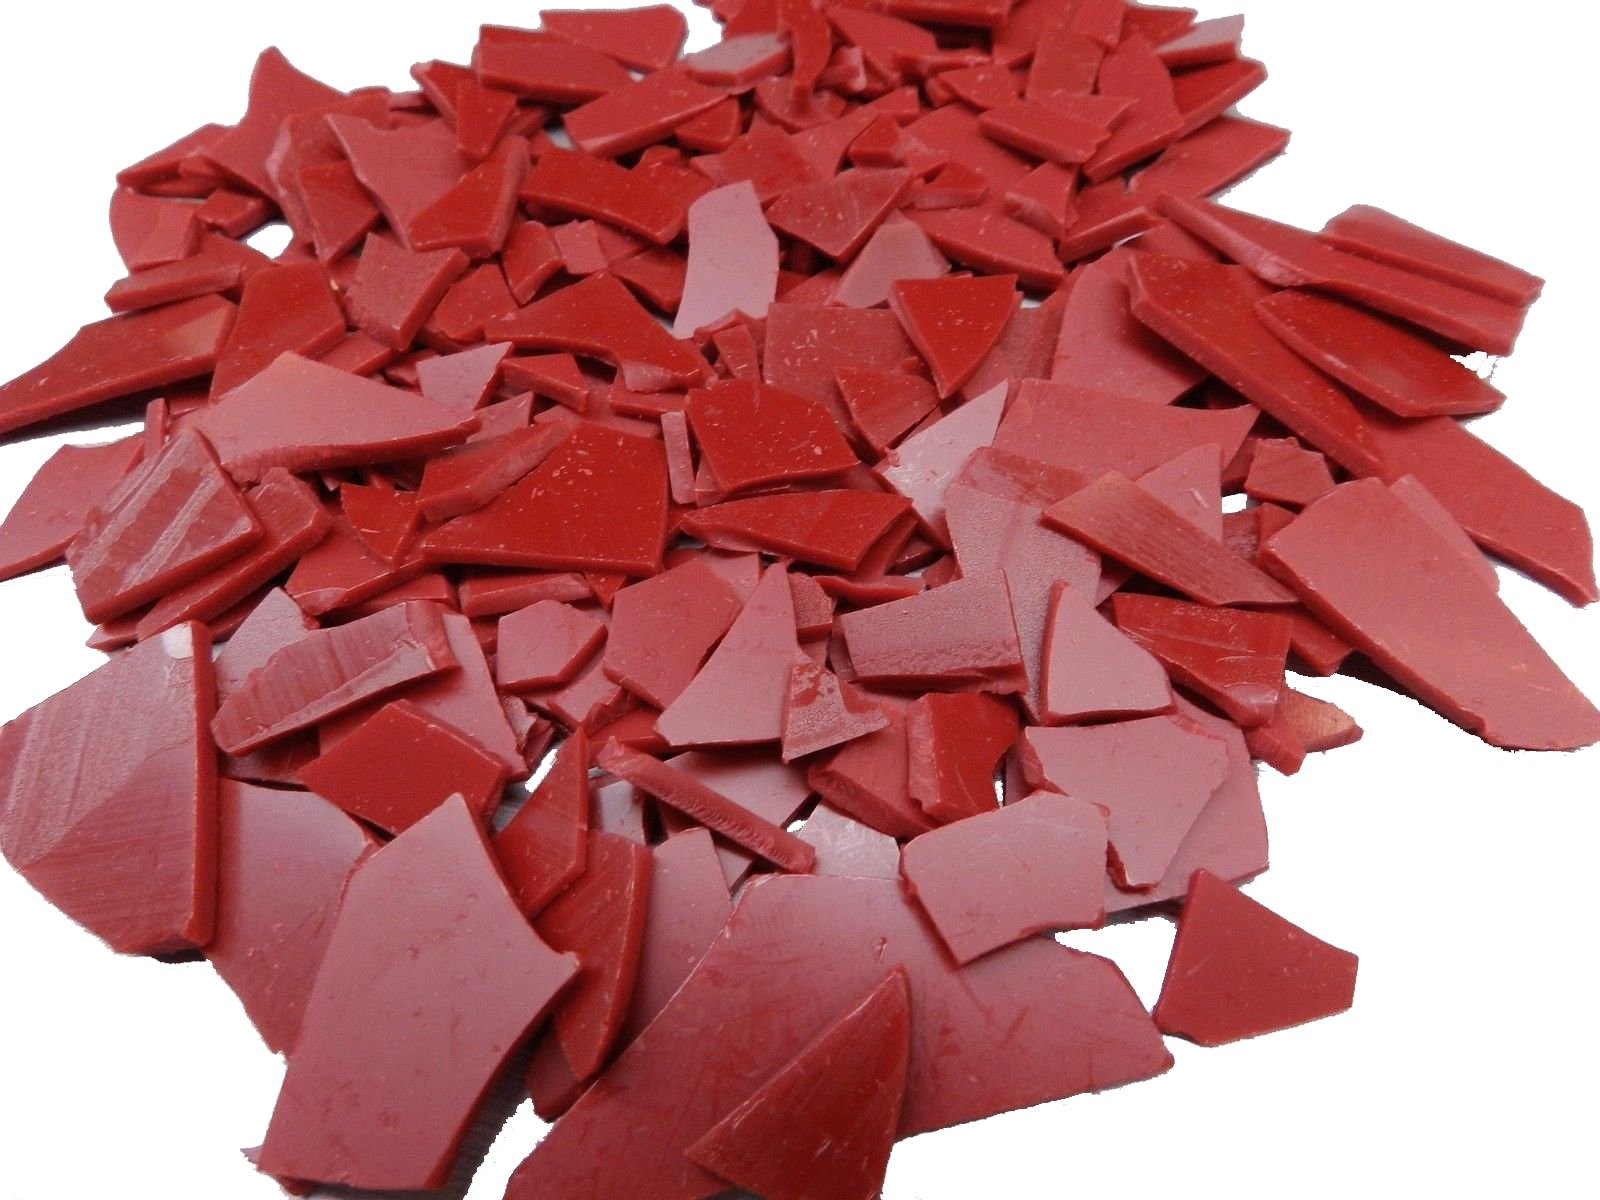 RUBY RED INJECTION WAX FREEMAN FLAKES JEWELRY LOST WAX CASTING WAXES 5 POUNDS (LZ 5.4 R BOX A) NOVELTOOLS by NOVELTOOLS